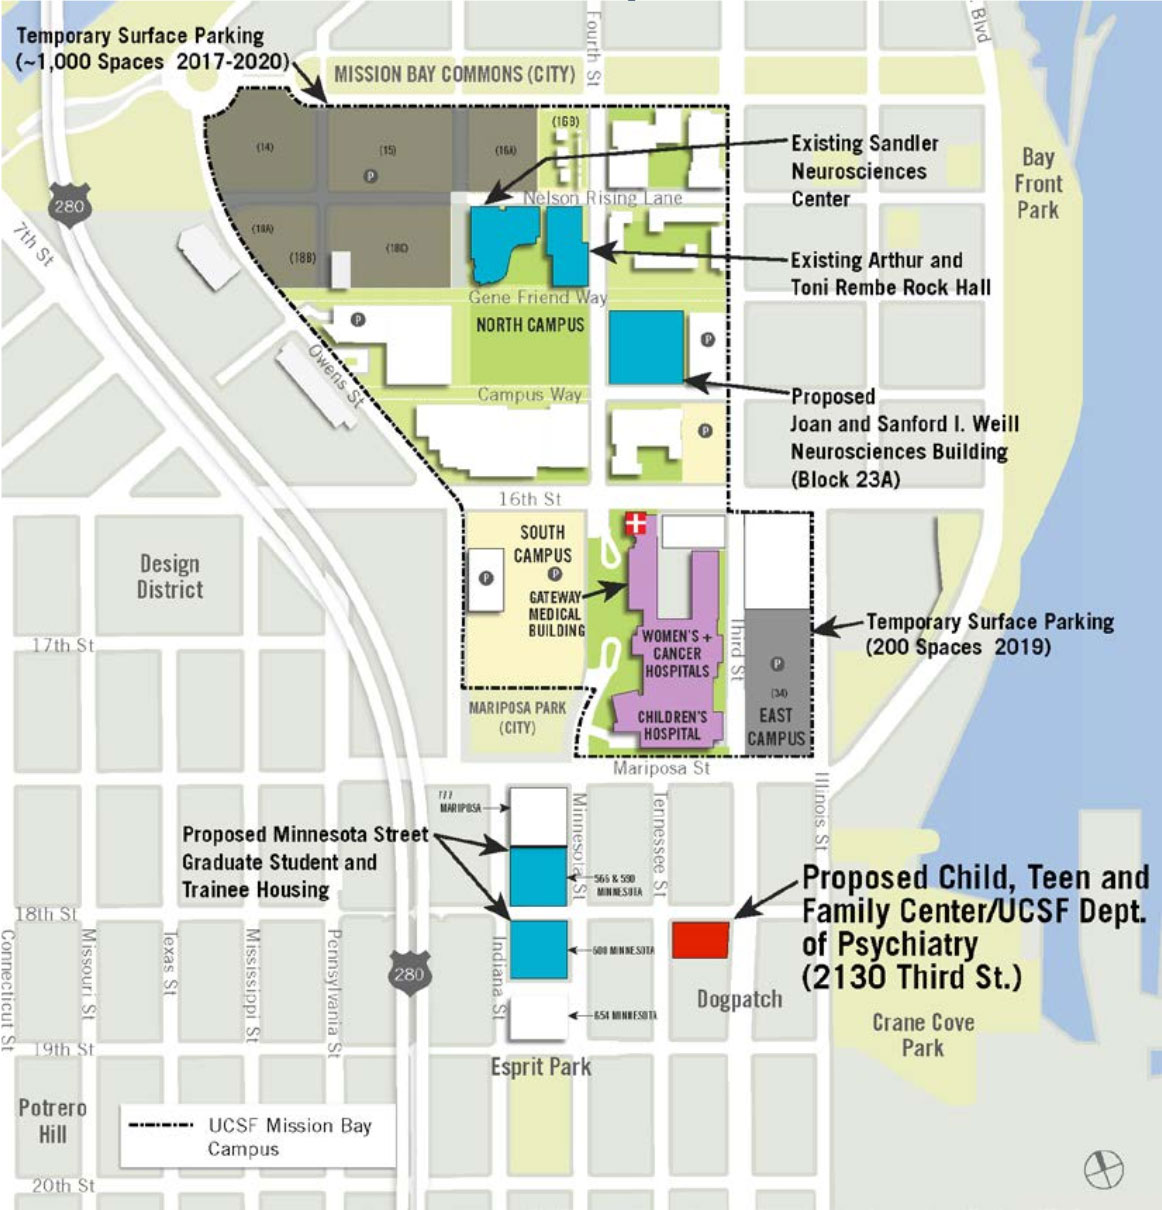 UC Regents Approve Building Plans for 3 Projects in Mission ... on san diego mission bay fishing map, ucsf mount zion map, mission bay shuttle map, china basin san francisco map, san francisco bay area map, mission bay san francisco map,